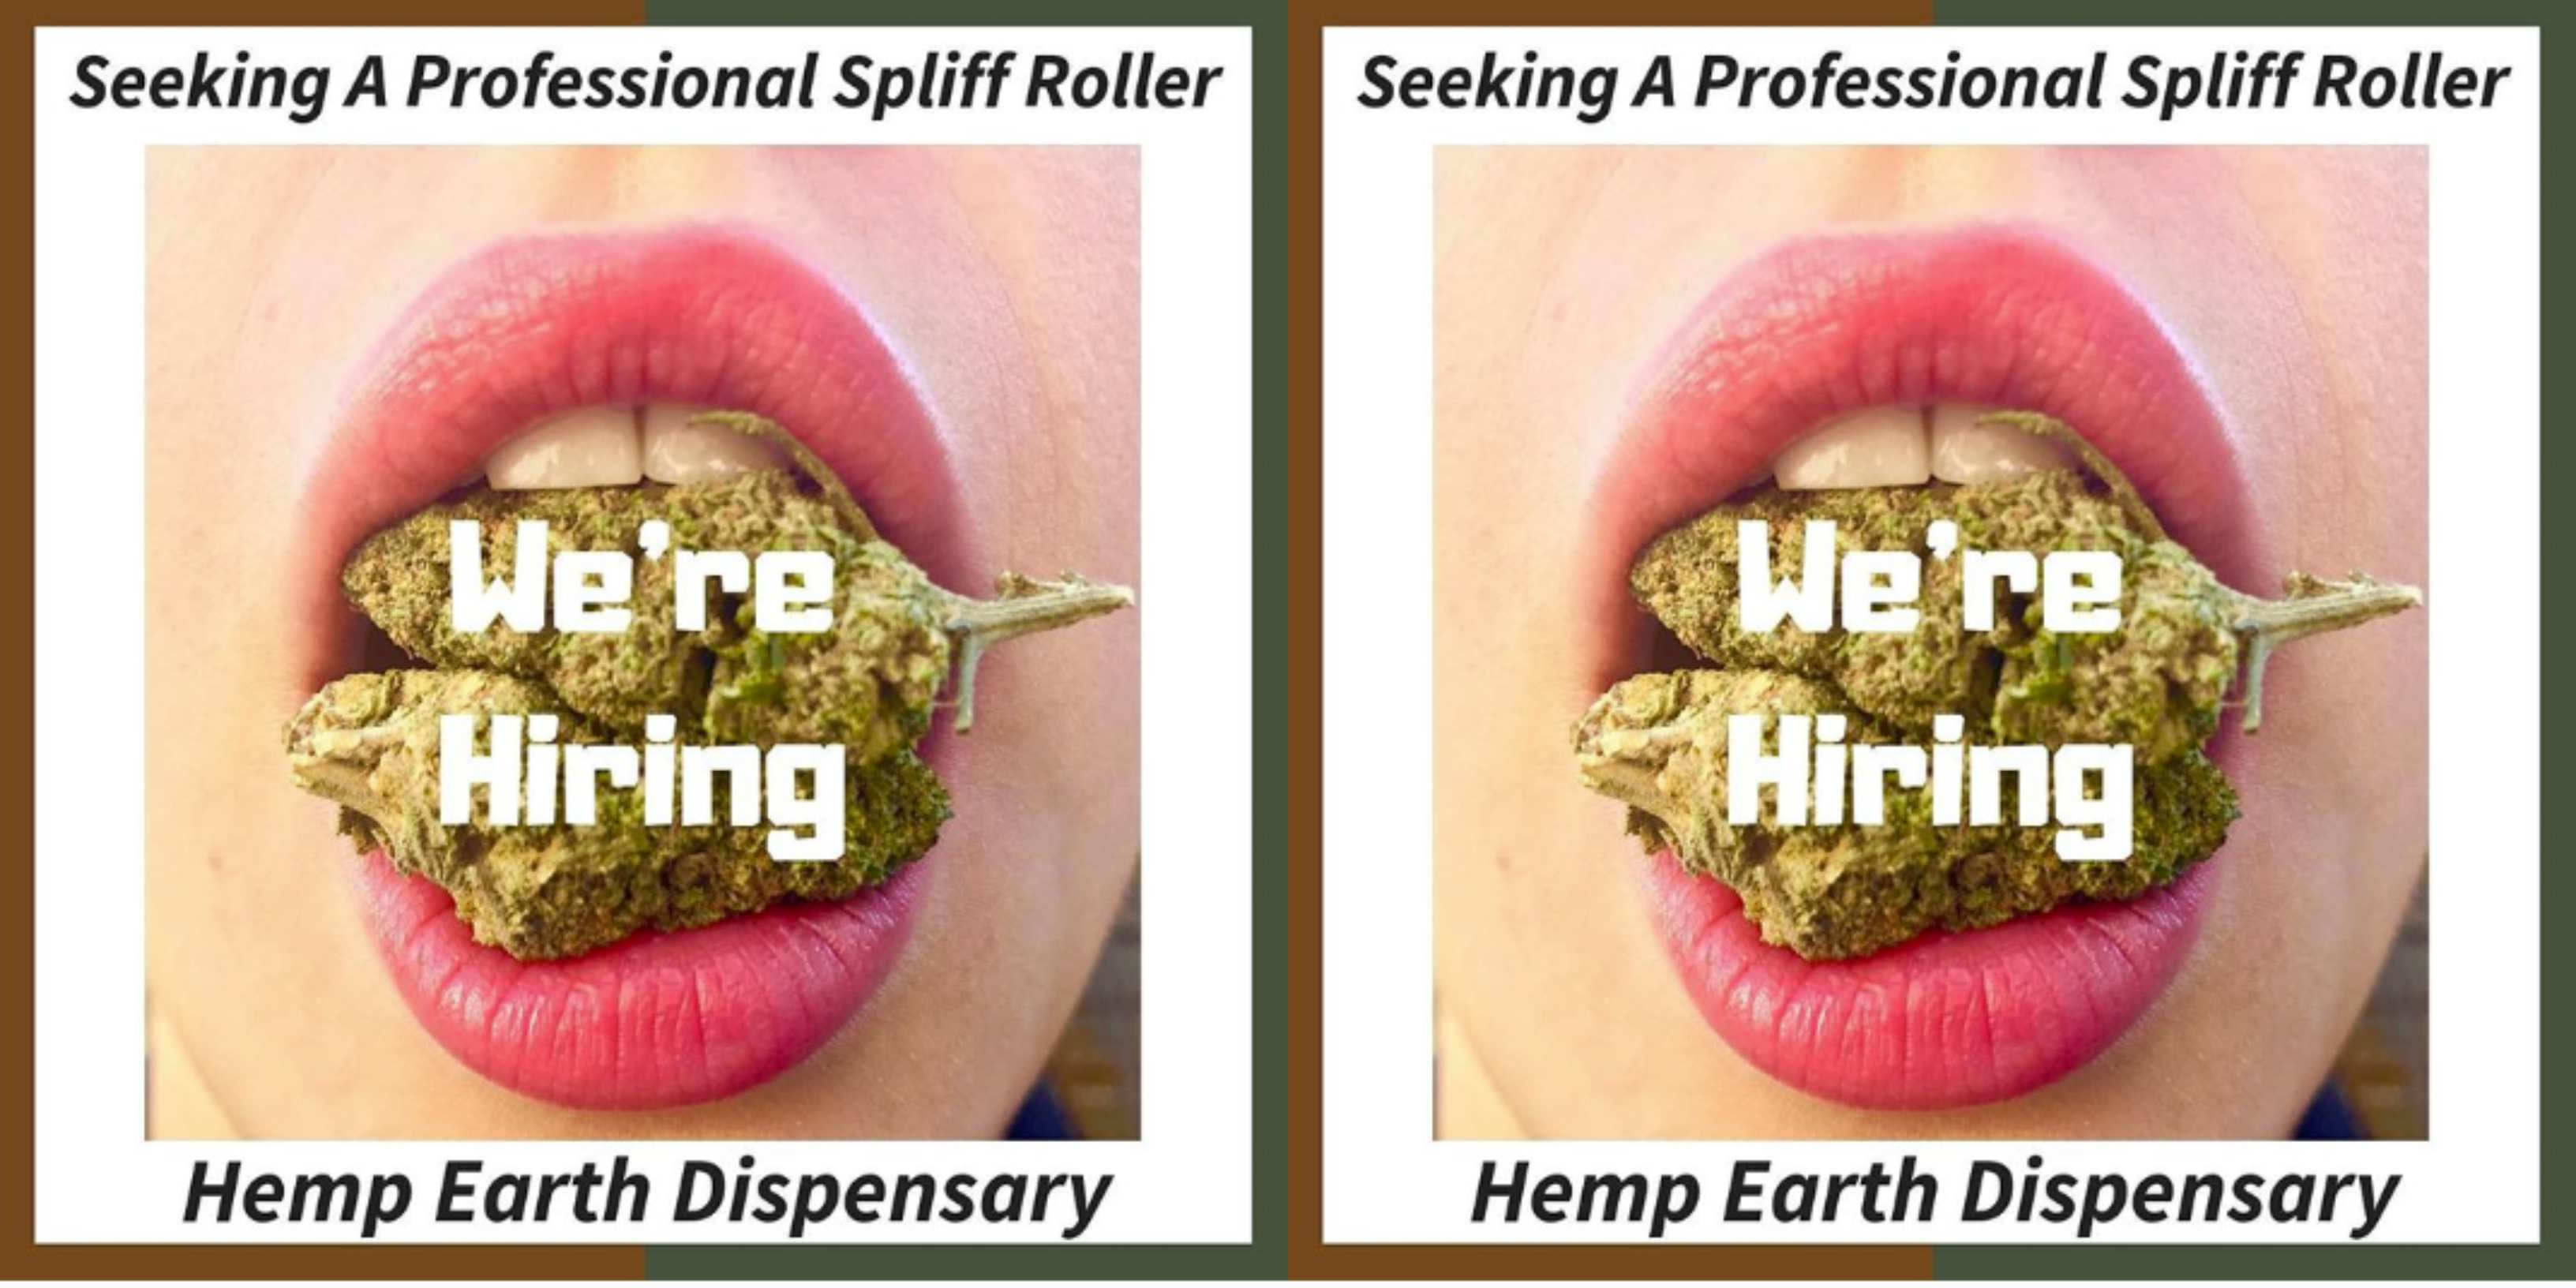 This shop in Brighton is hiring a professional spliff roller